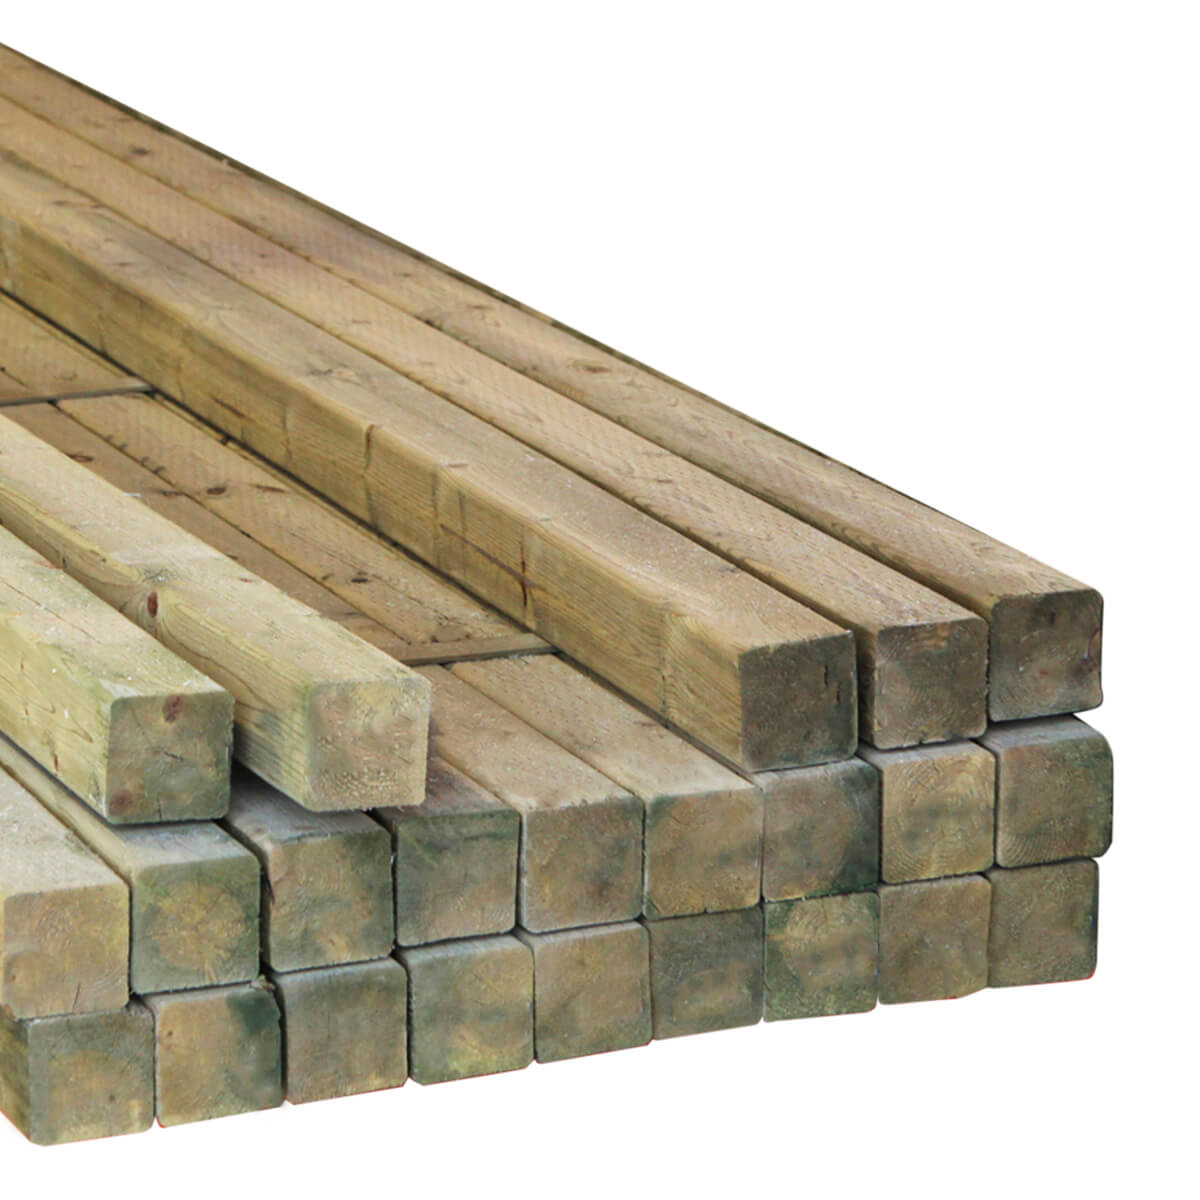 Rough CCA Treated Timbers - 4 x 6 x 20'